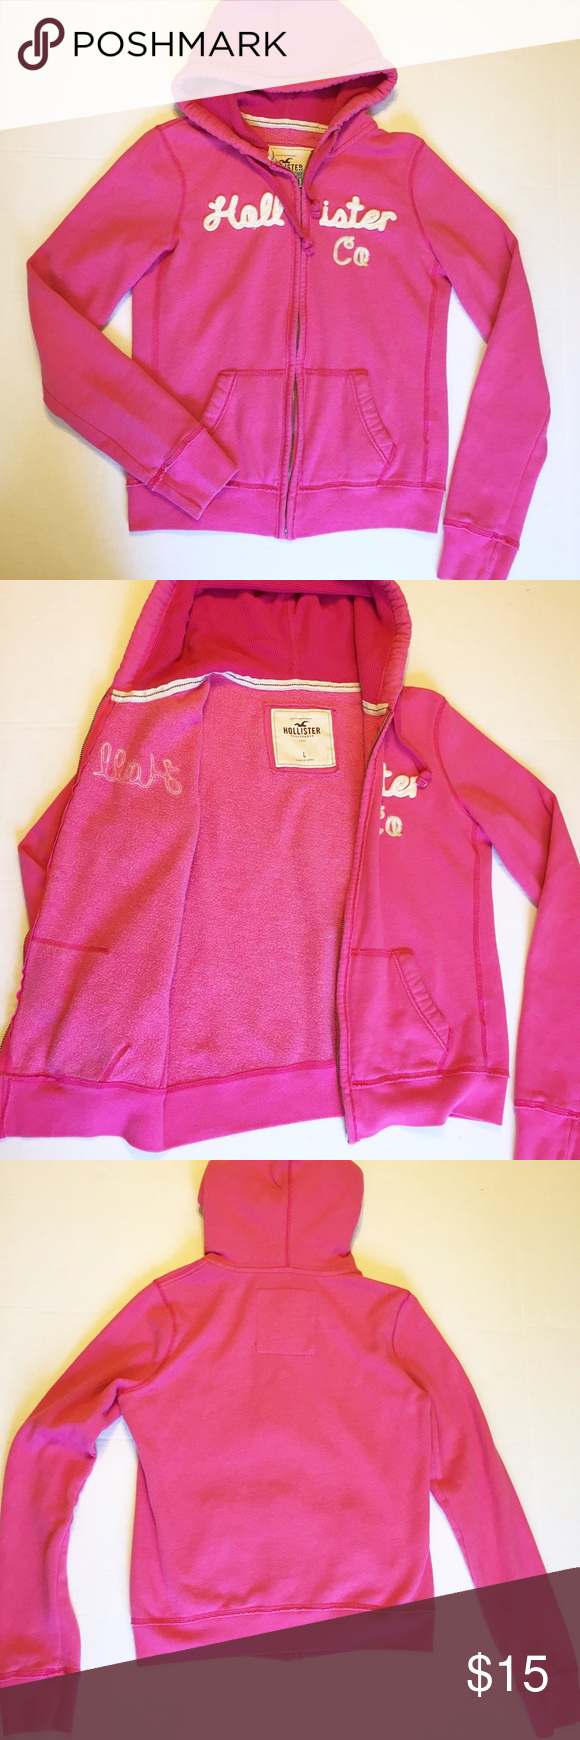 "Pink Hollister Zip Front Hoodie Sweater Pink Hollister zip front hoodie sweater! In good used condition, lightly faded from washing. The hood is lined with a thermal layer. There is a tiny spot on the back that looks like it will probably wash out. Size Large. Laying Flat Measurements: from shoulder to hem is 22.5"" long, Bust is 19"" across. 60% Cotton, 40% Polyester. BUNDLE TO SAVE! Hollister Tops Sweatshirts & Hoodies"